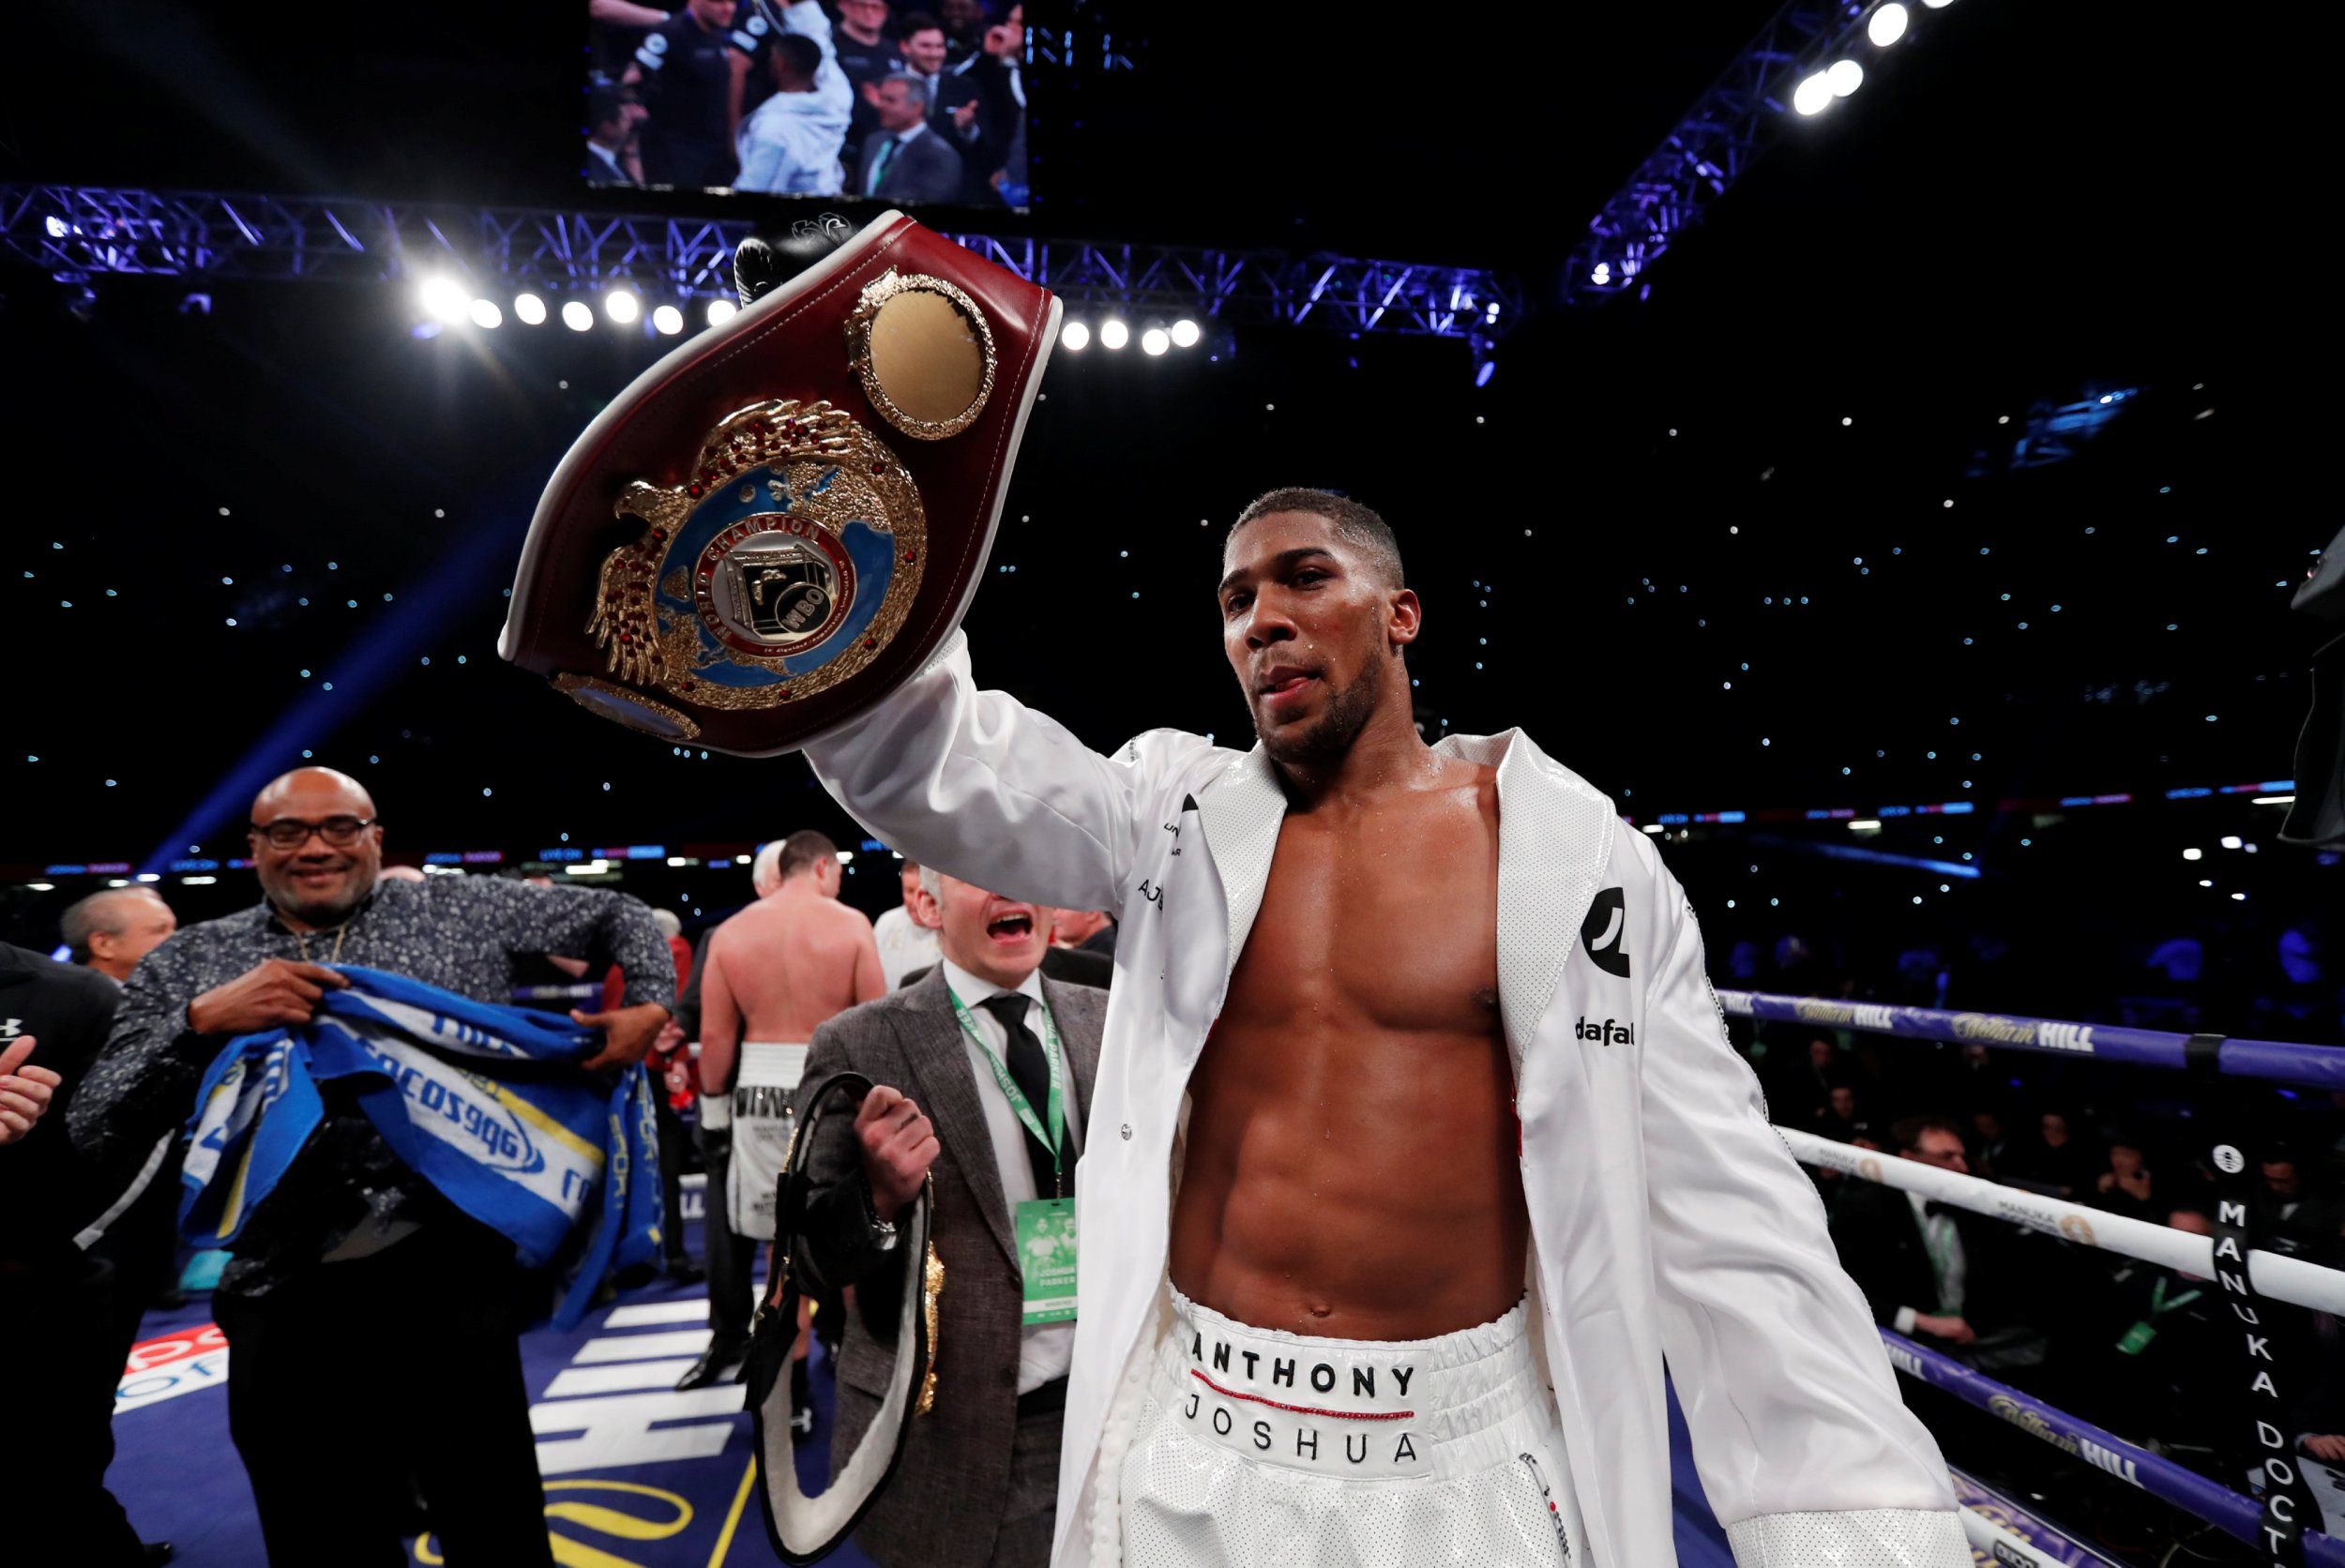 Anthony Joshua stakes claim for position of undisputed heavyweight king by beating Joseph Parker